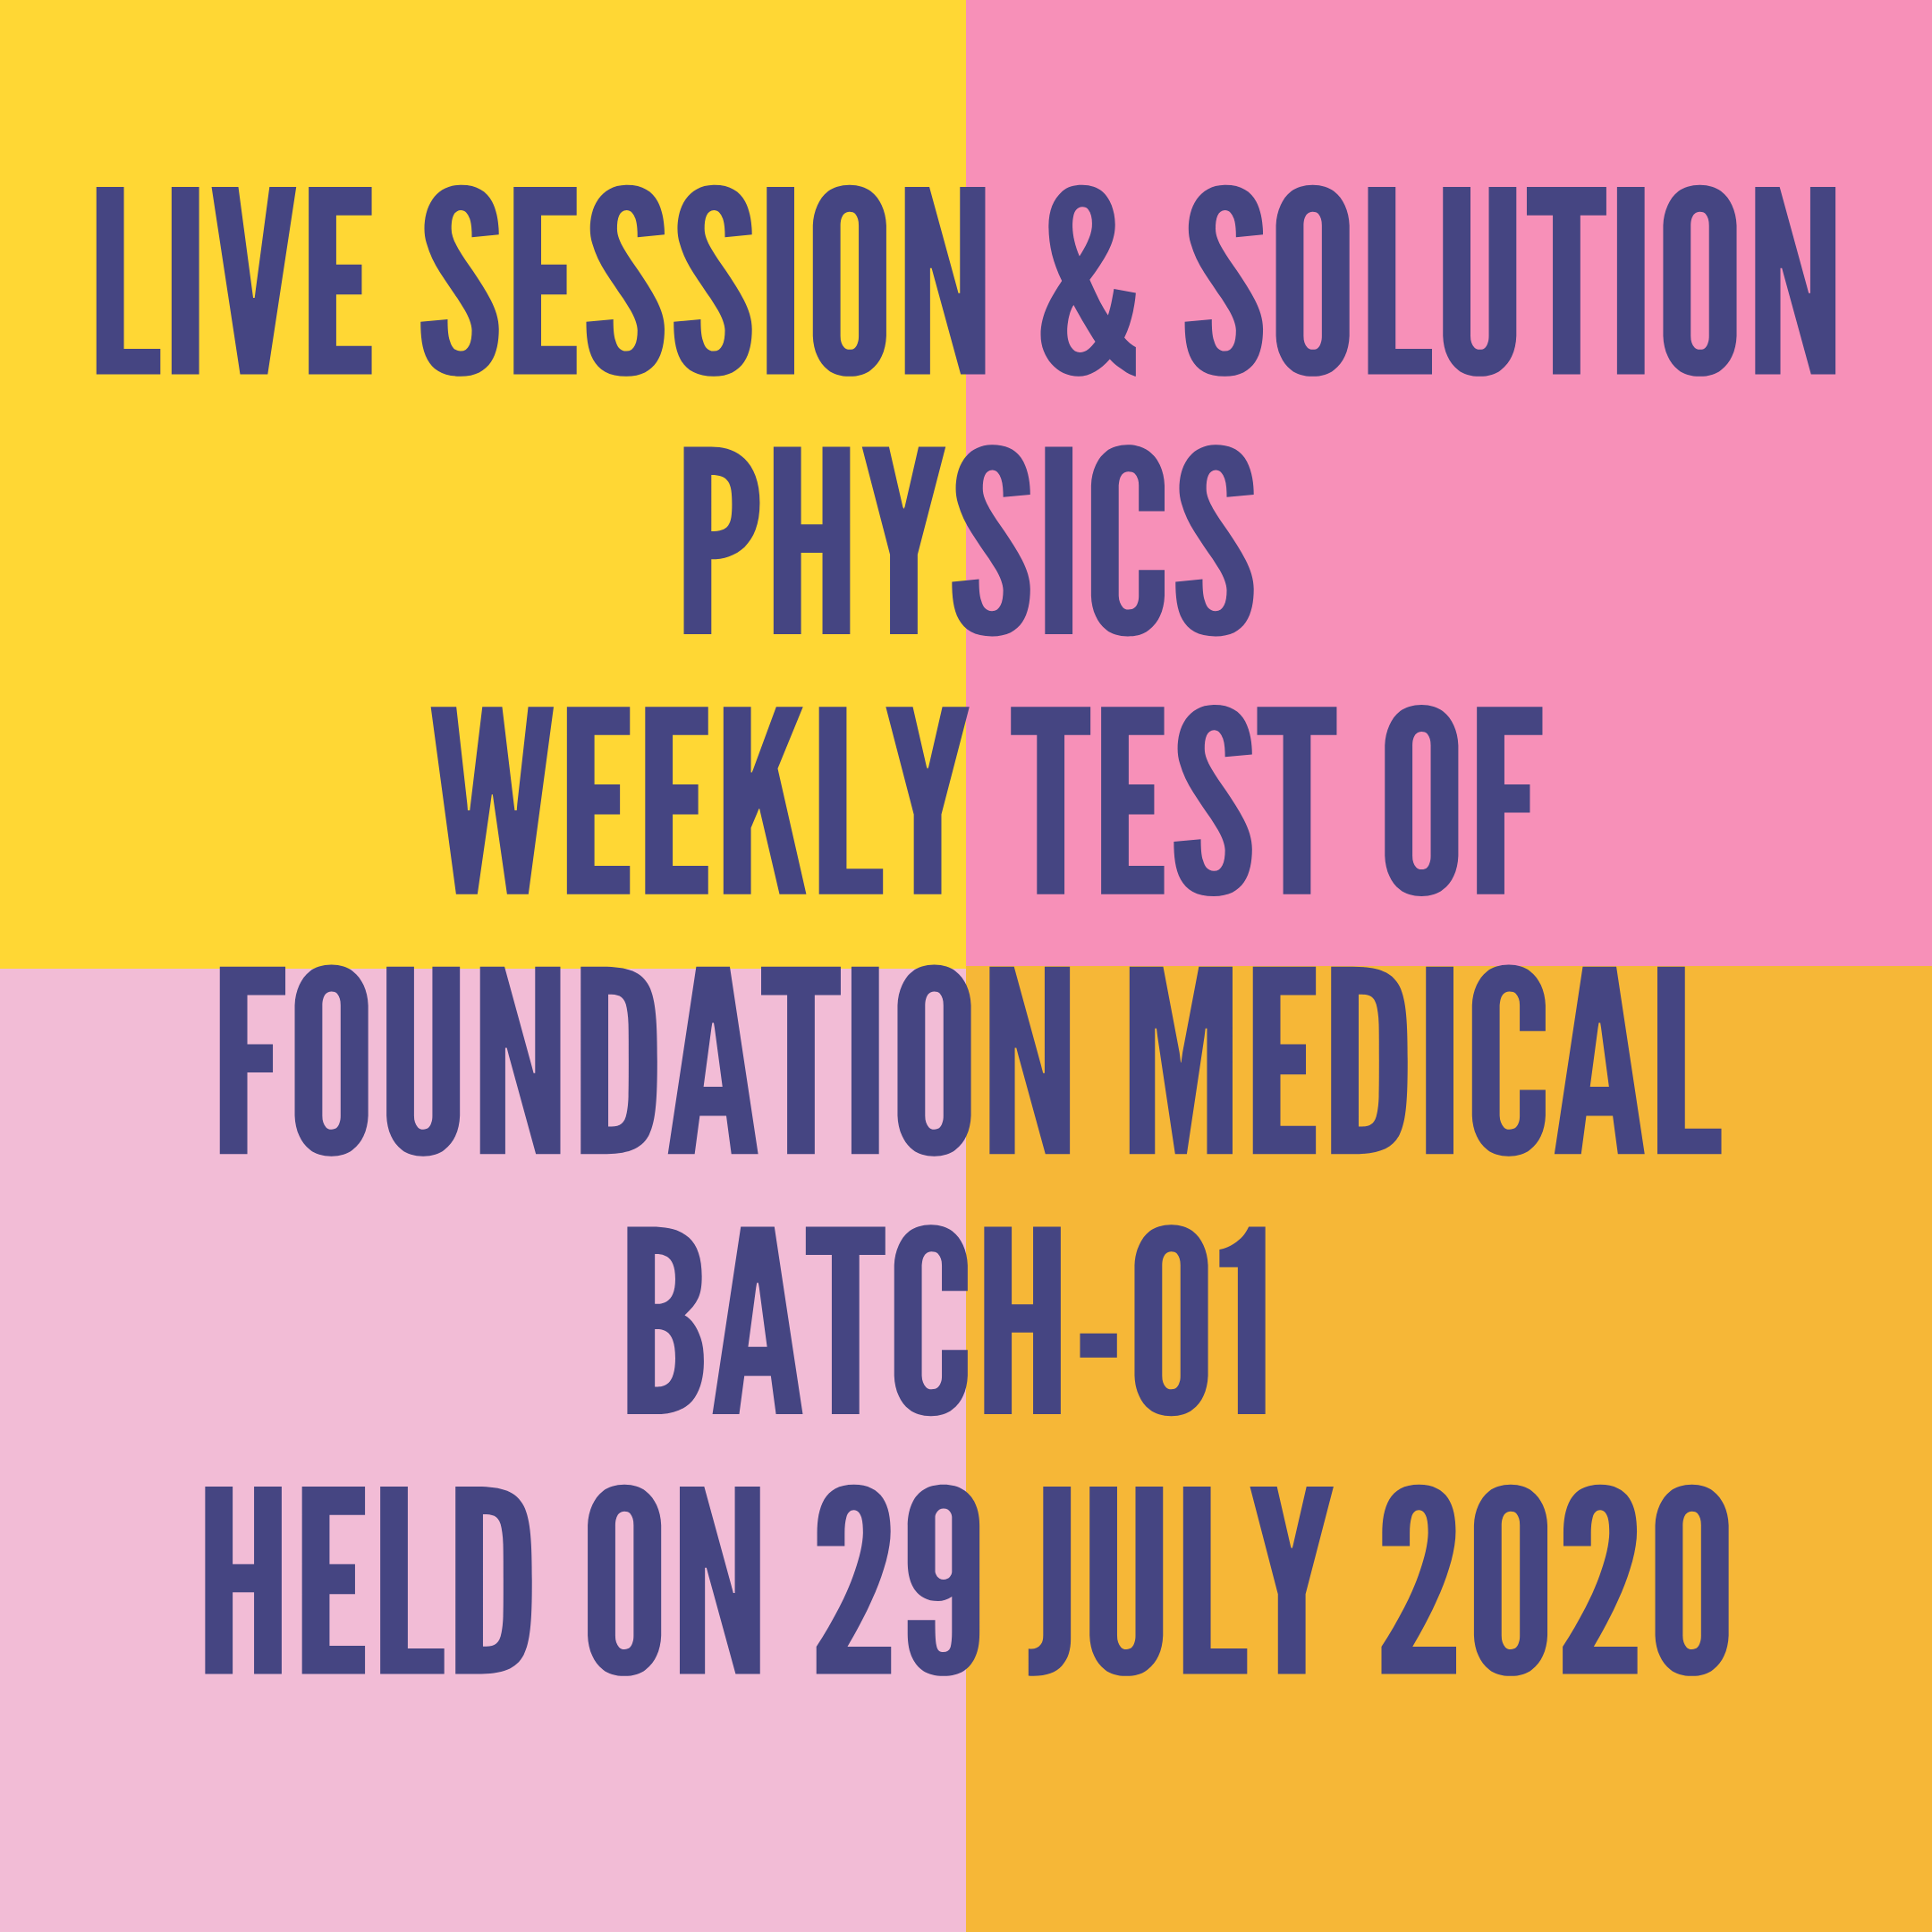 LIVE SESSION & SOLUTION PHYSICS  WEEKLY TEST OF FOUNDATION MEDICAL BATCH-01  HELD ON 29 JULY 2020